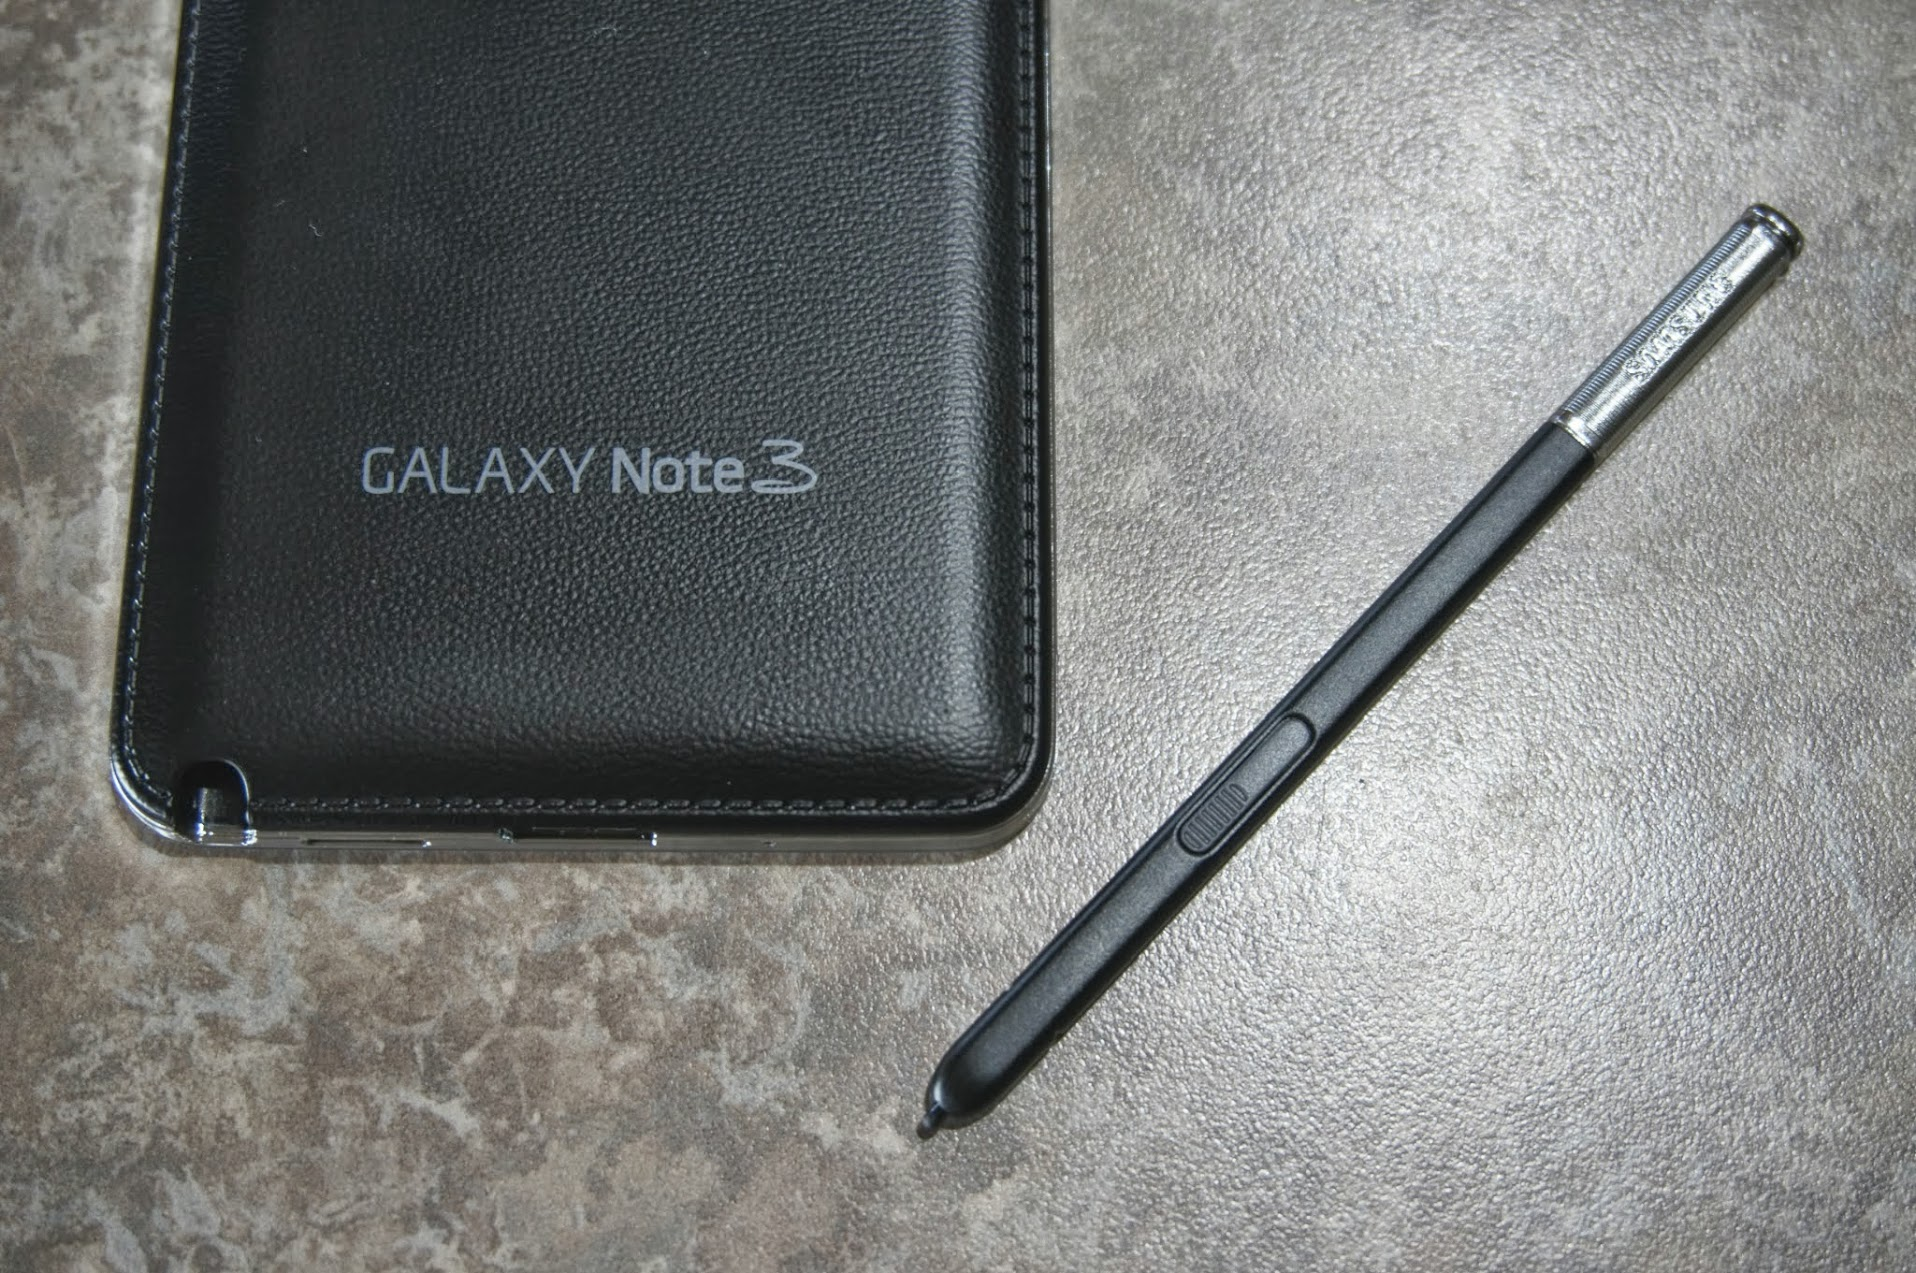 Galaxy Note 3 and pen